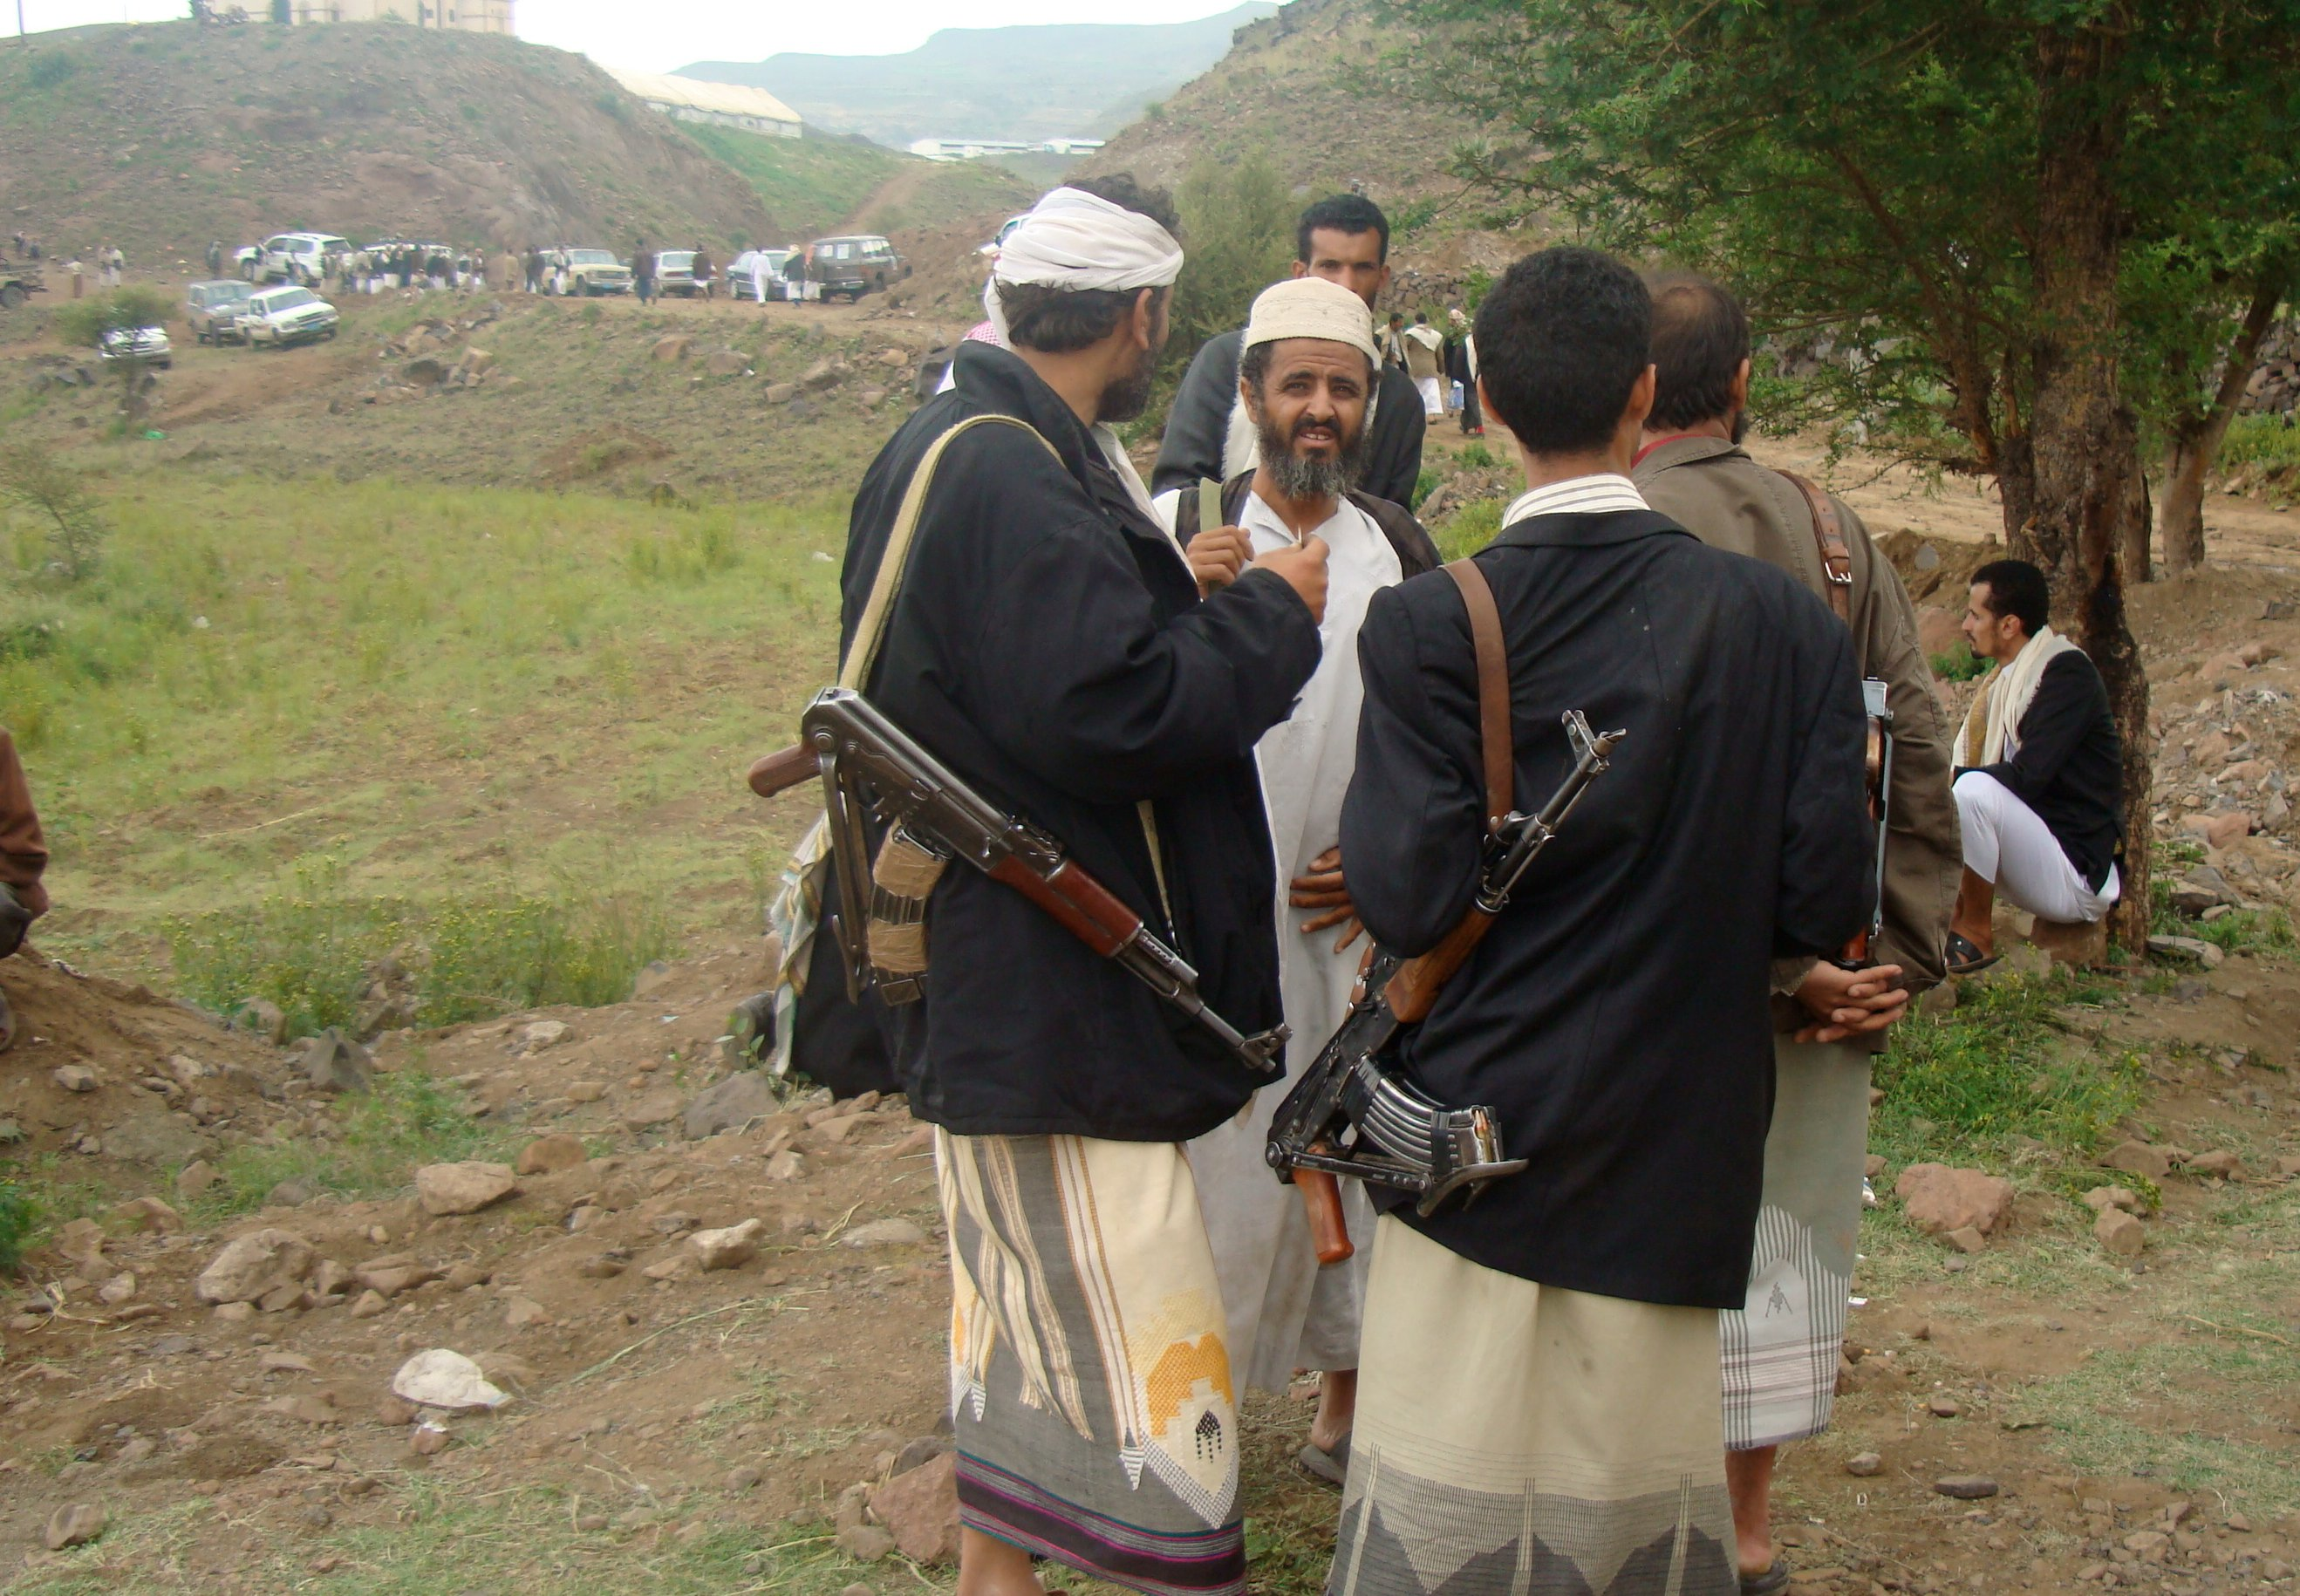 Gun bearing is commonplace in Yemen's tribal communities